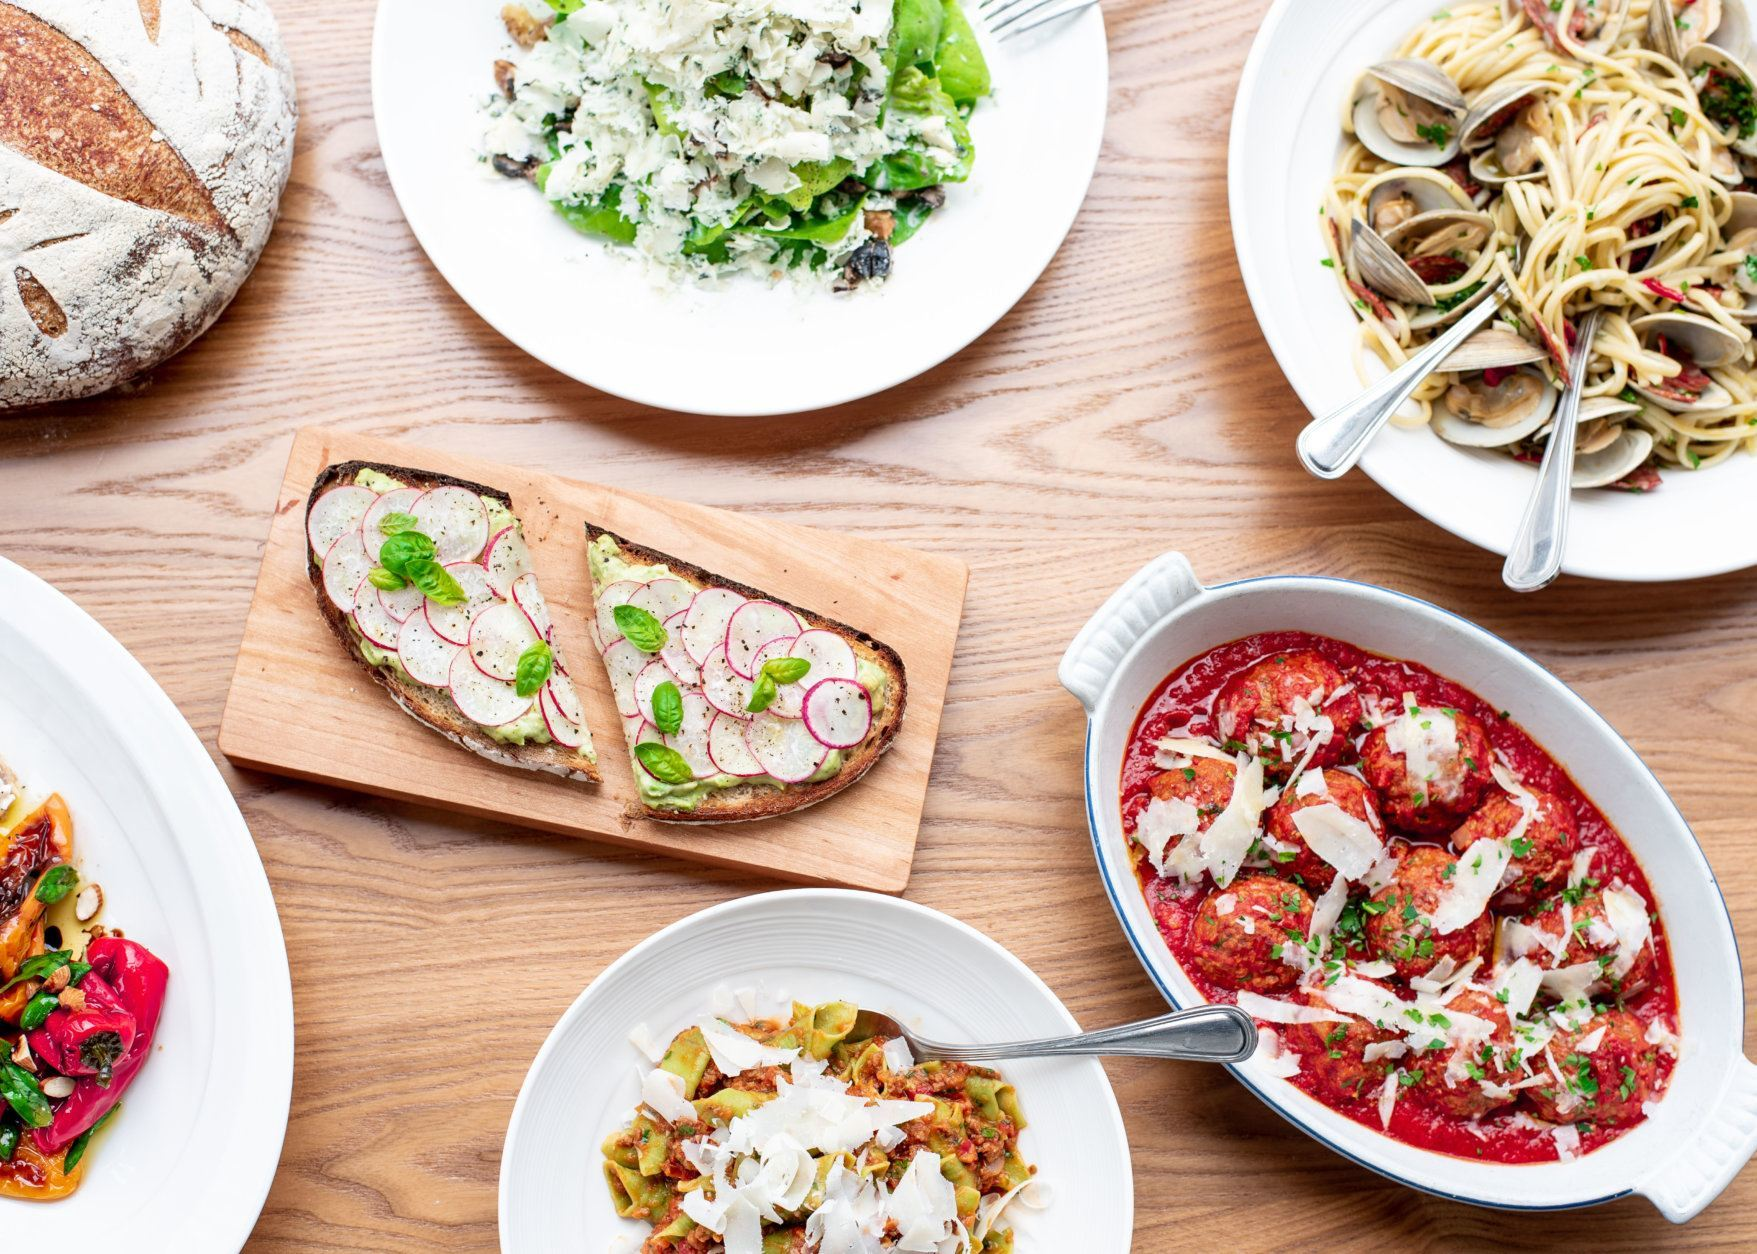 A spread of food featured at Thompson Italian